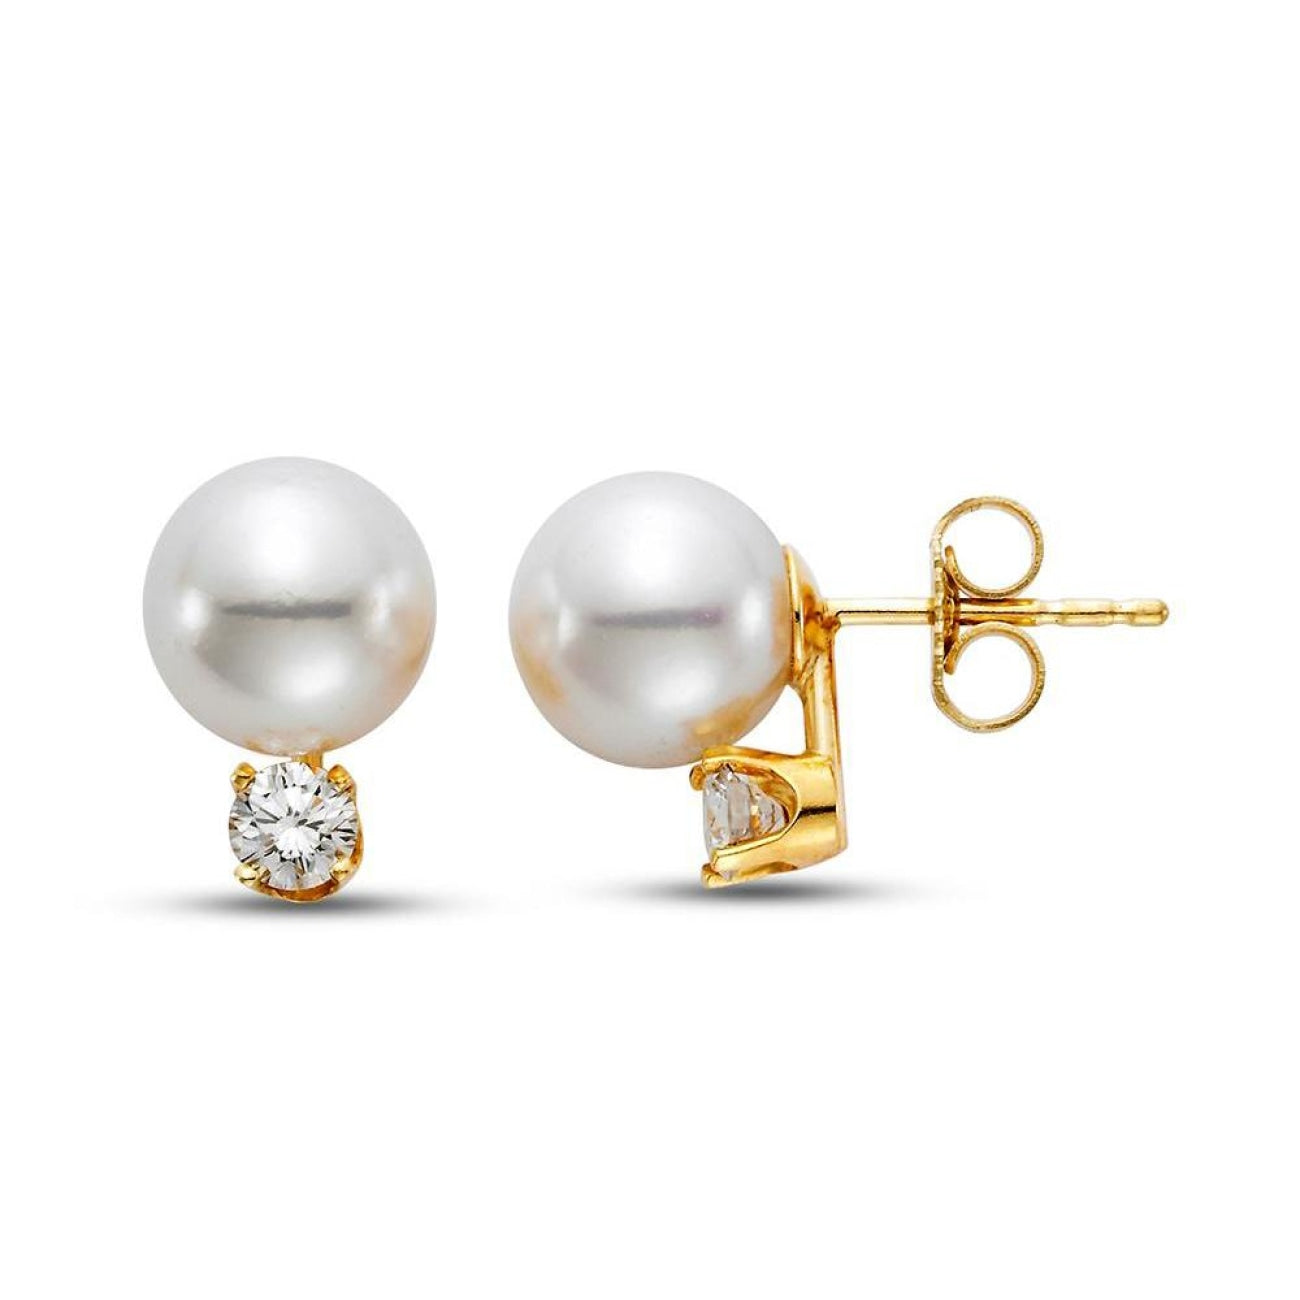 Mastoloni Jewelry - 7.5-8MM AKOYA PEARL & DIAMOND STUD EARRINGS | Manfredi Jewels